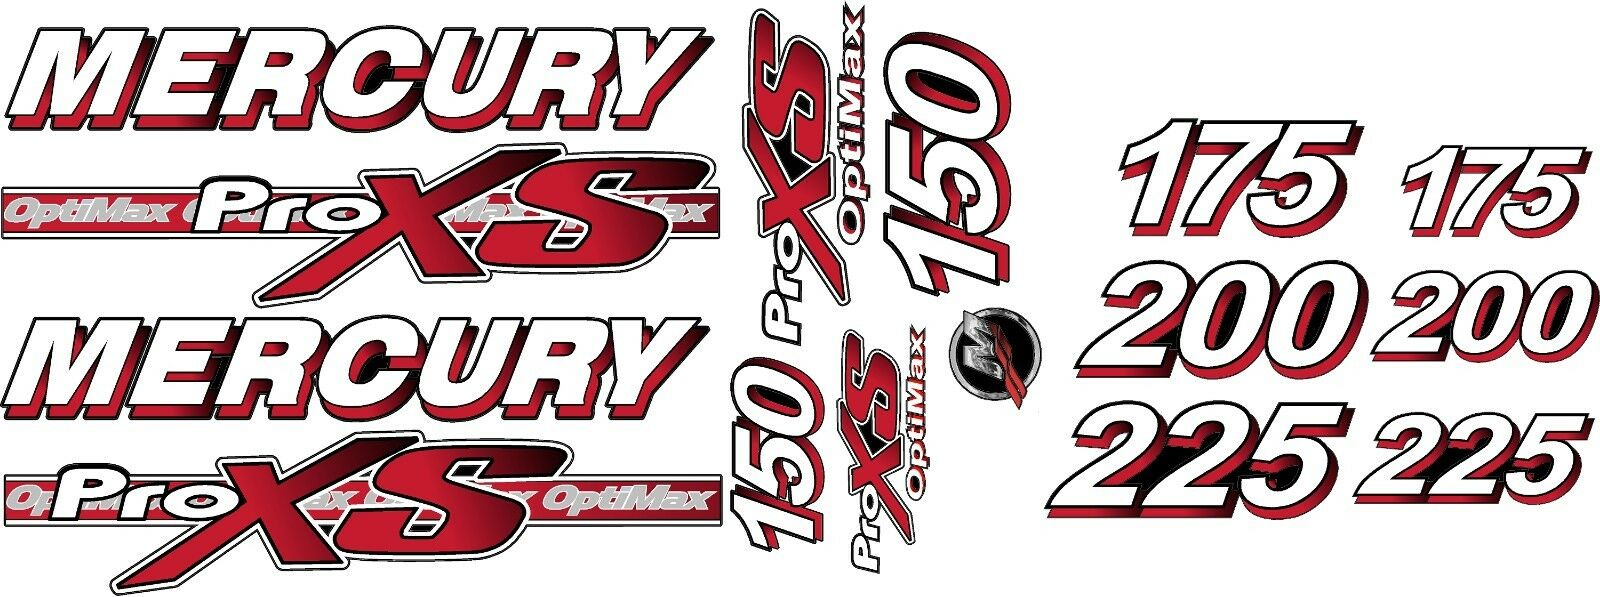 Mercury optimax pro xs 150 to 225 hp decal kit for sale online ebay